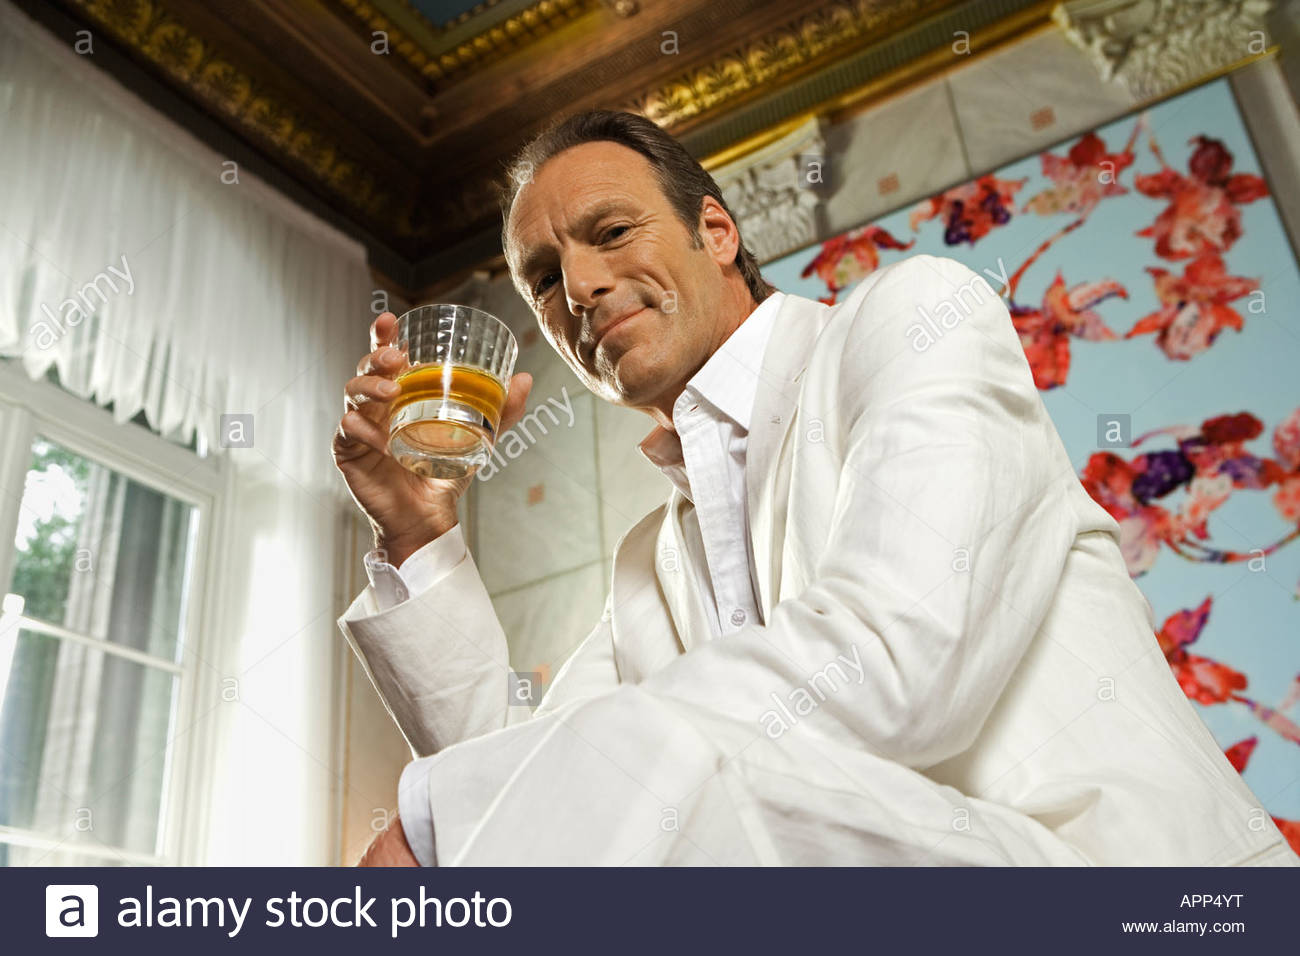 Low angle view of a mature man holding a glass of whiskey Stock Photo